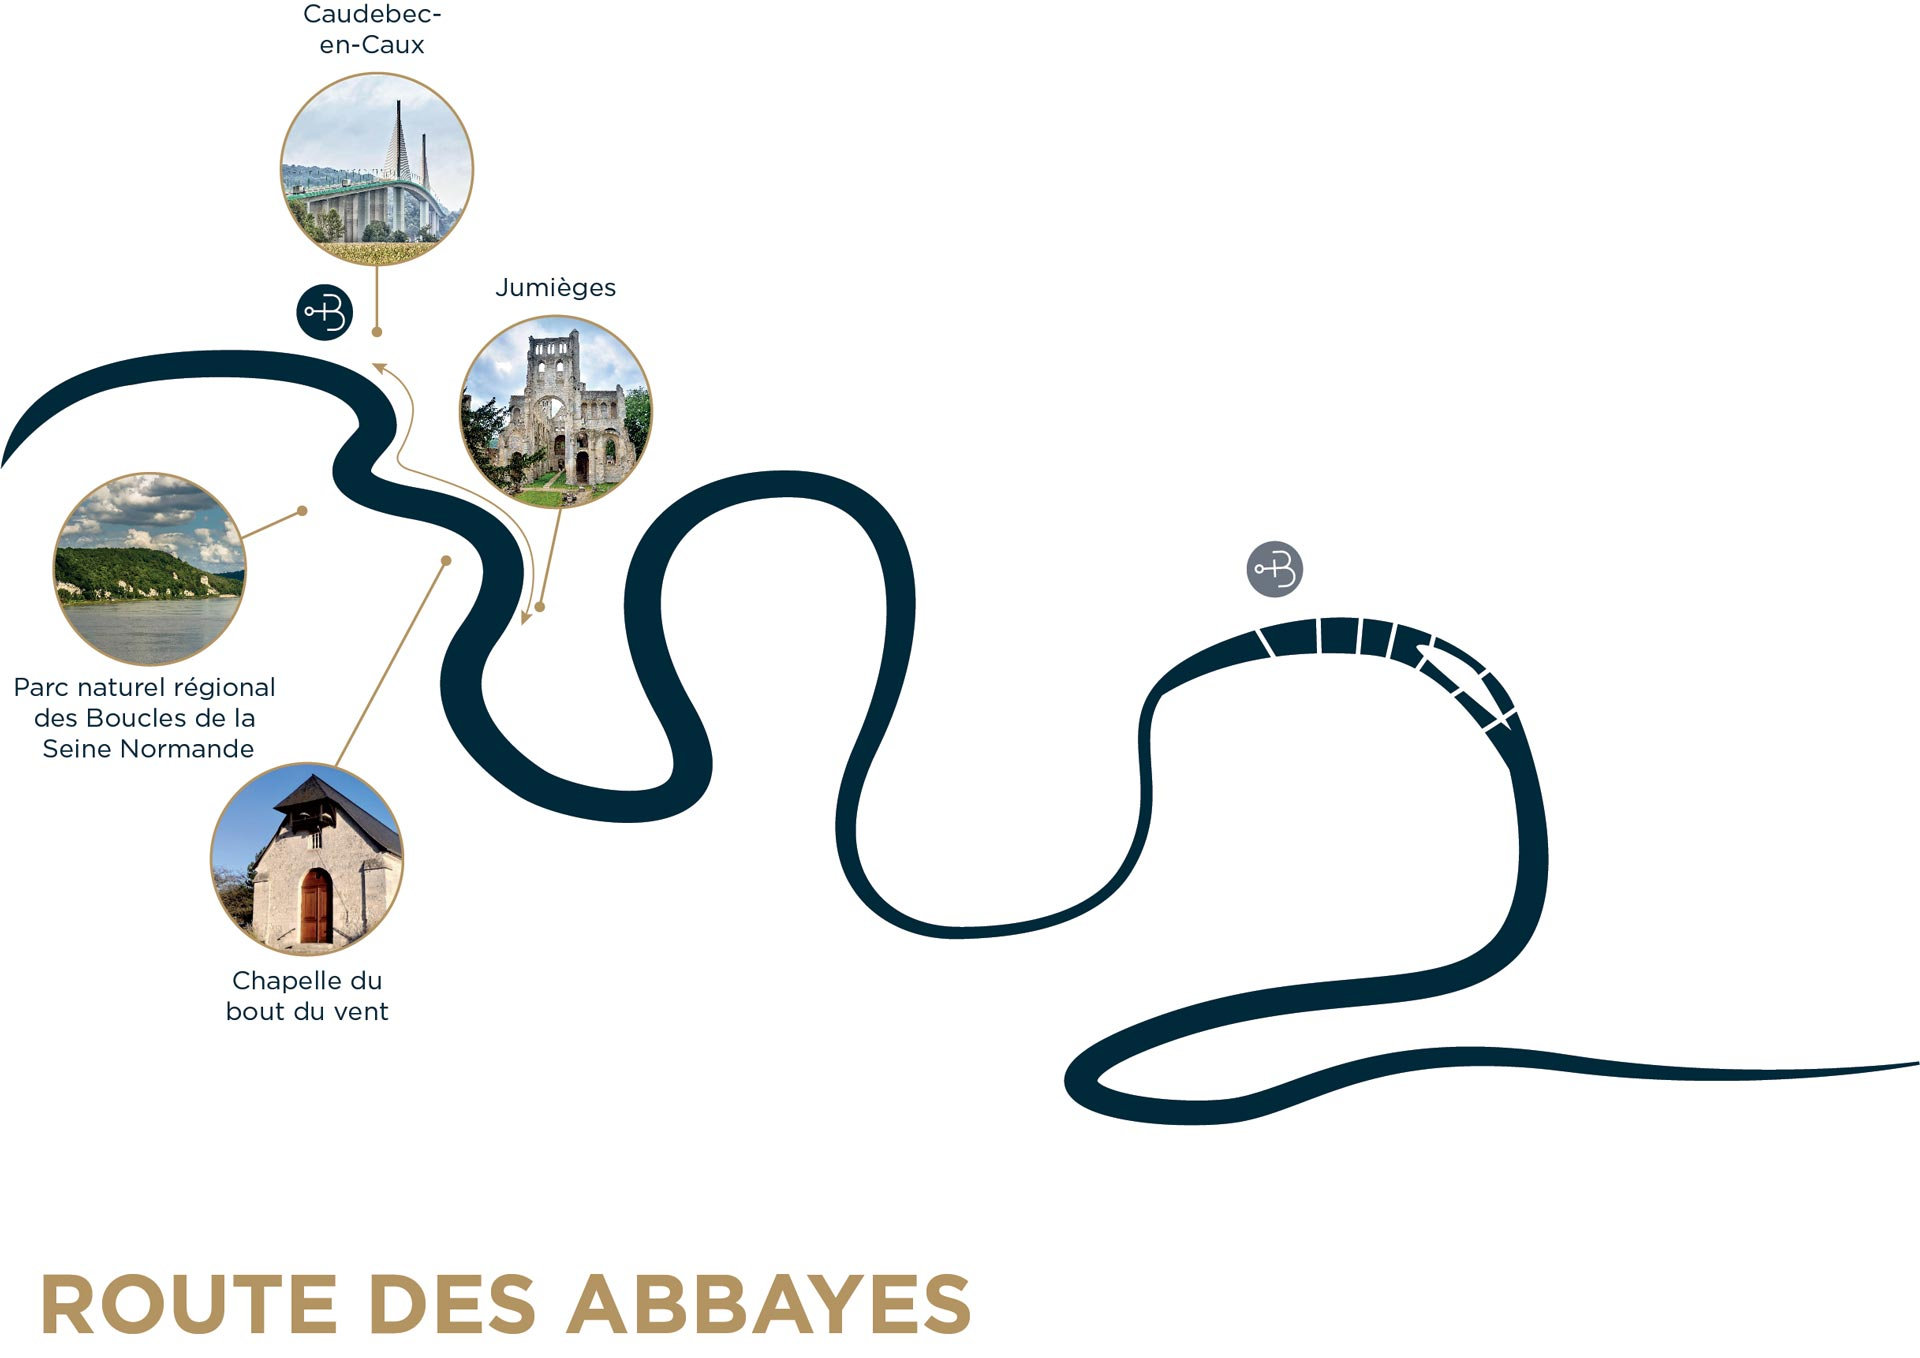 bodega-croisiere-route-abbayes-normandie